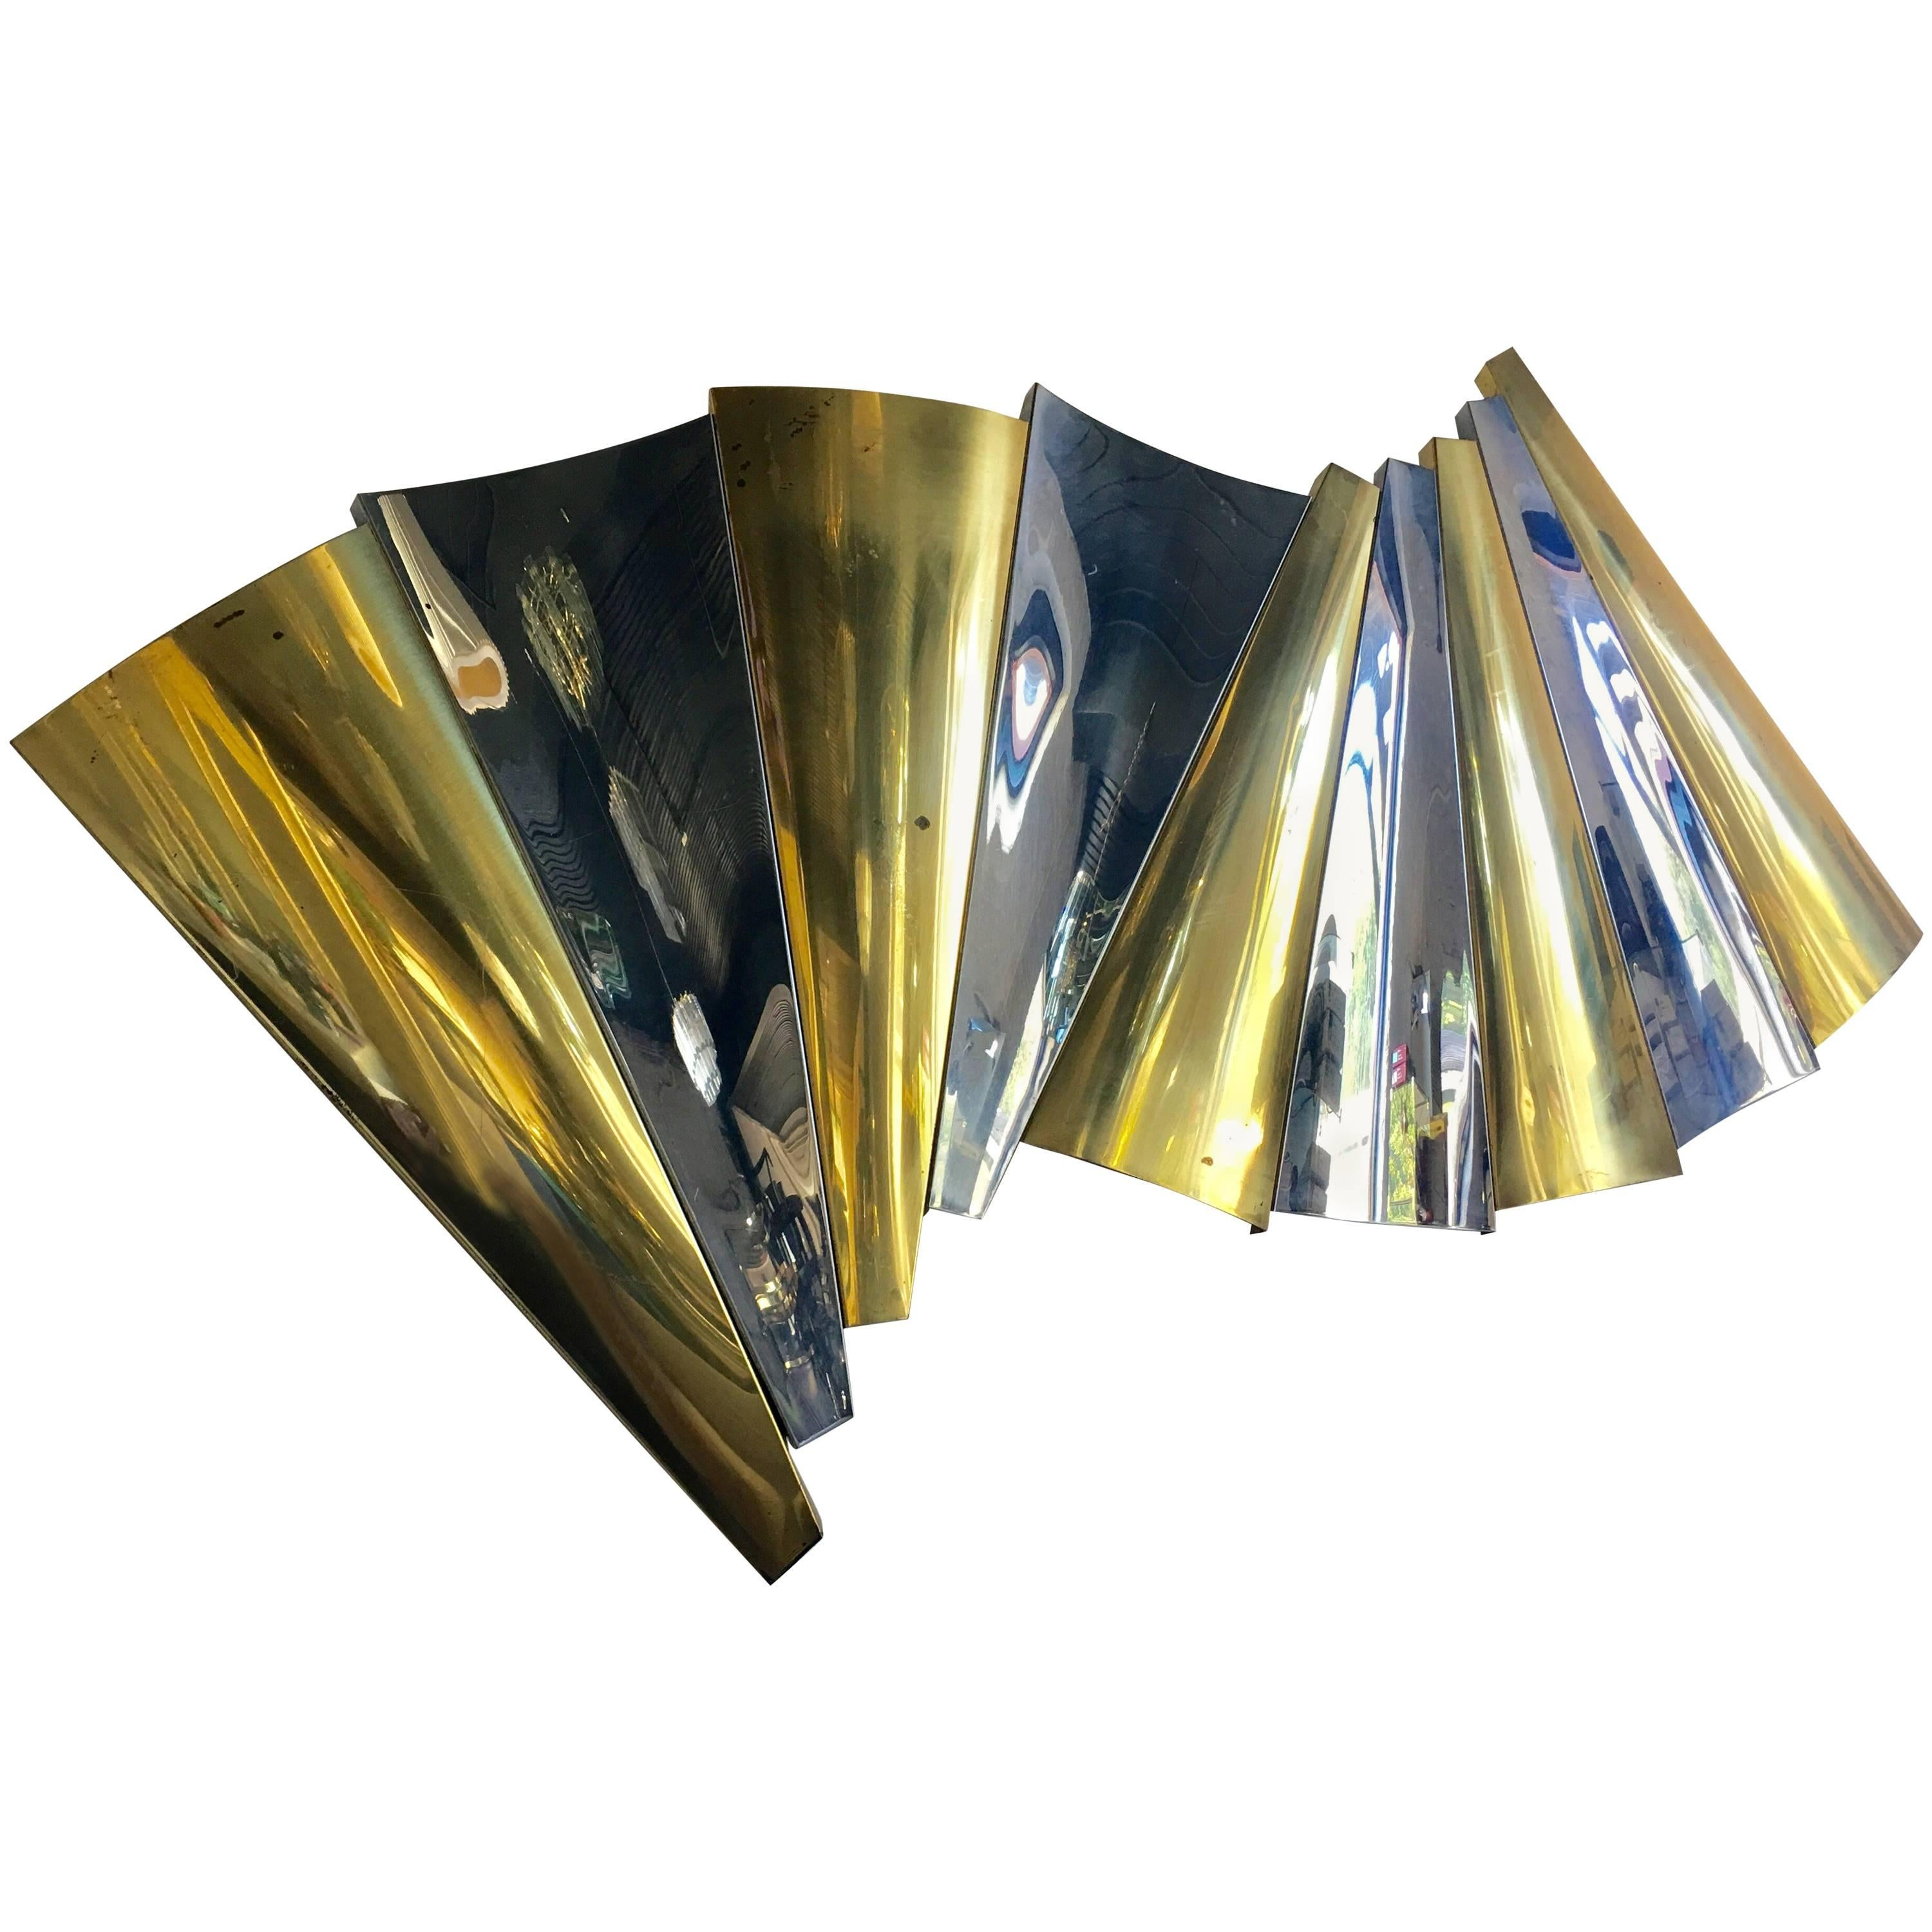 Curtis Jere Brass and Chrome Wall Sculpture, 1980s